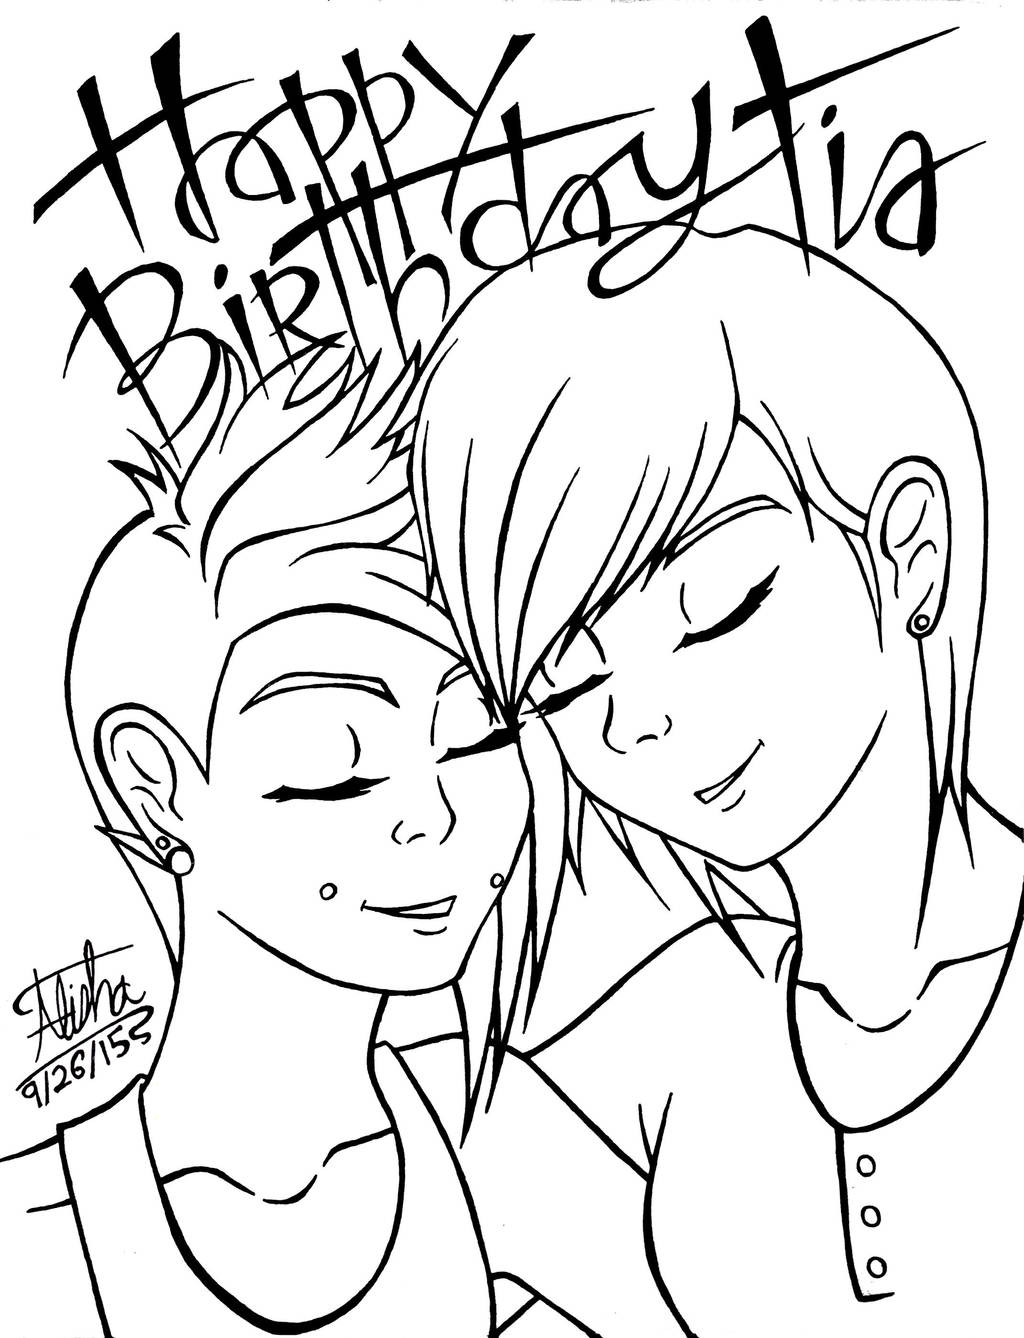 Happy Birthday Tia by AlishaArt on DeviantArt